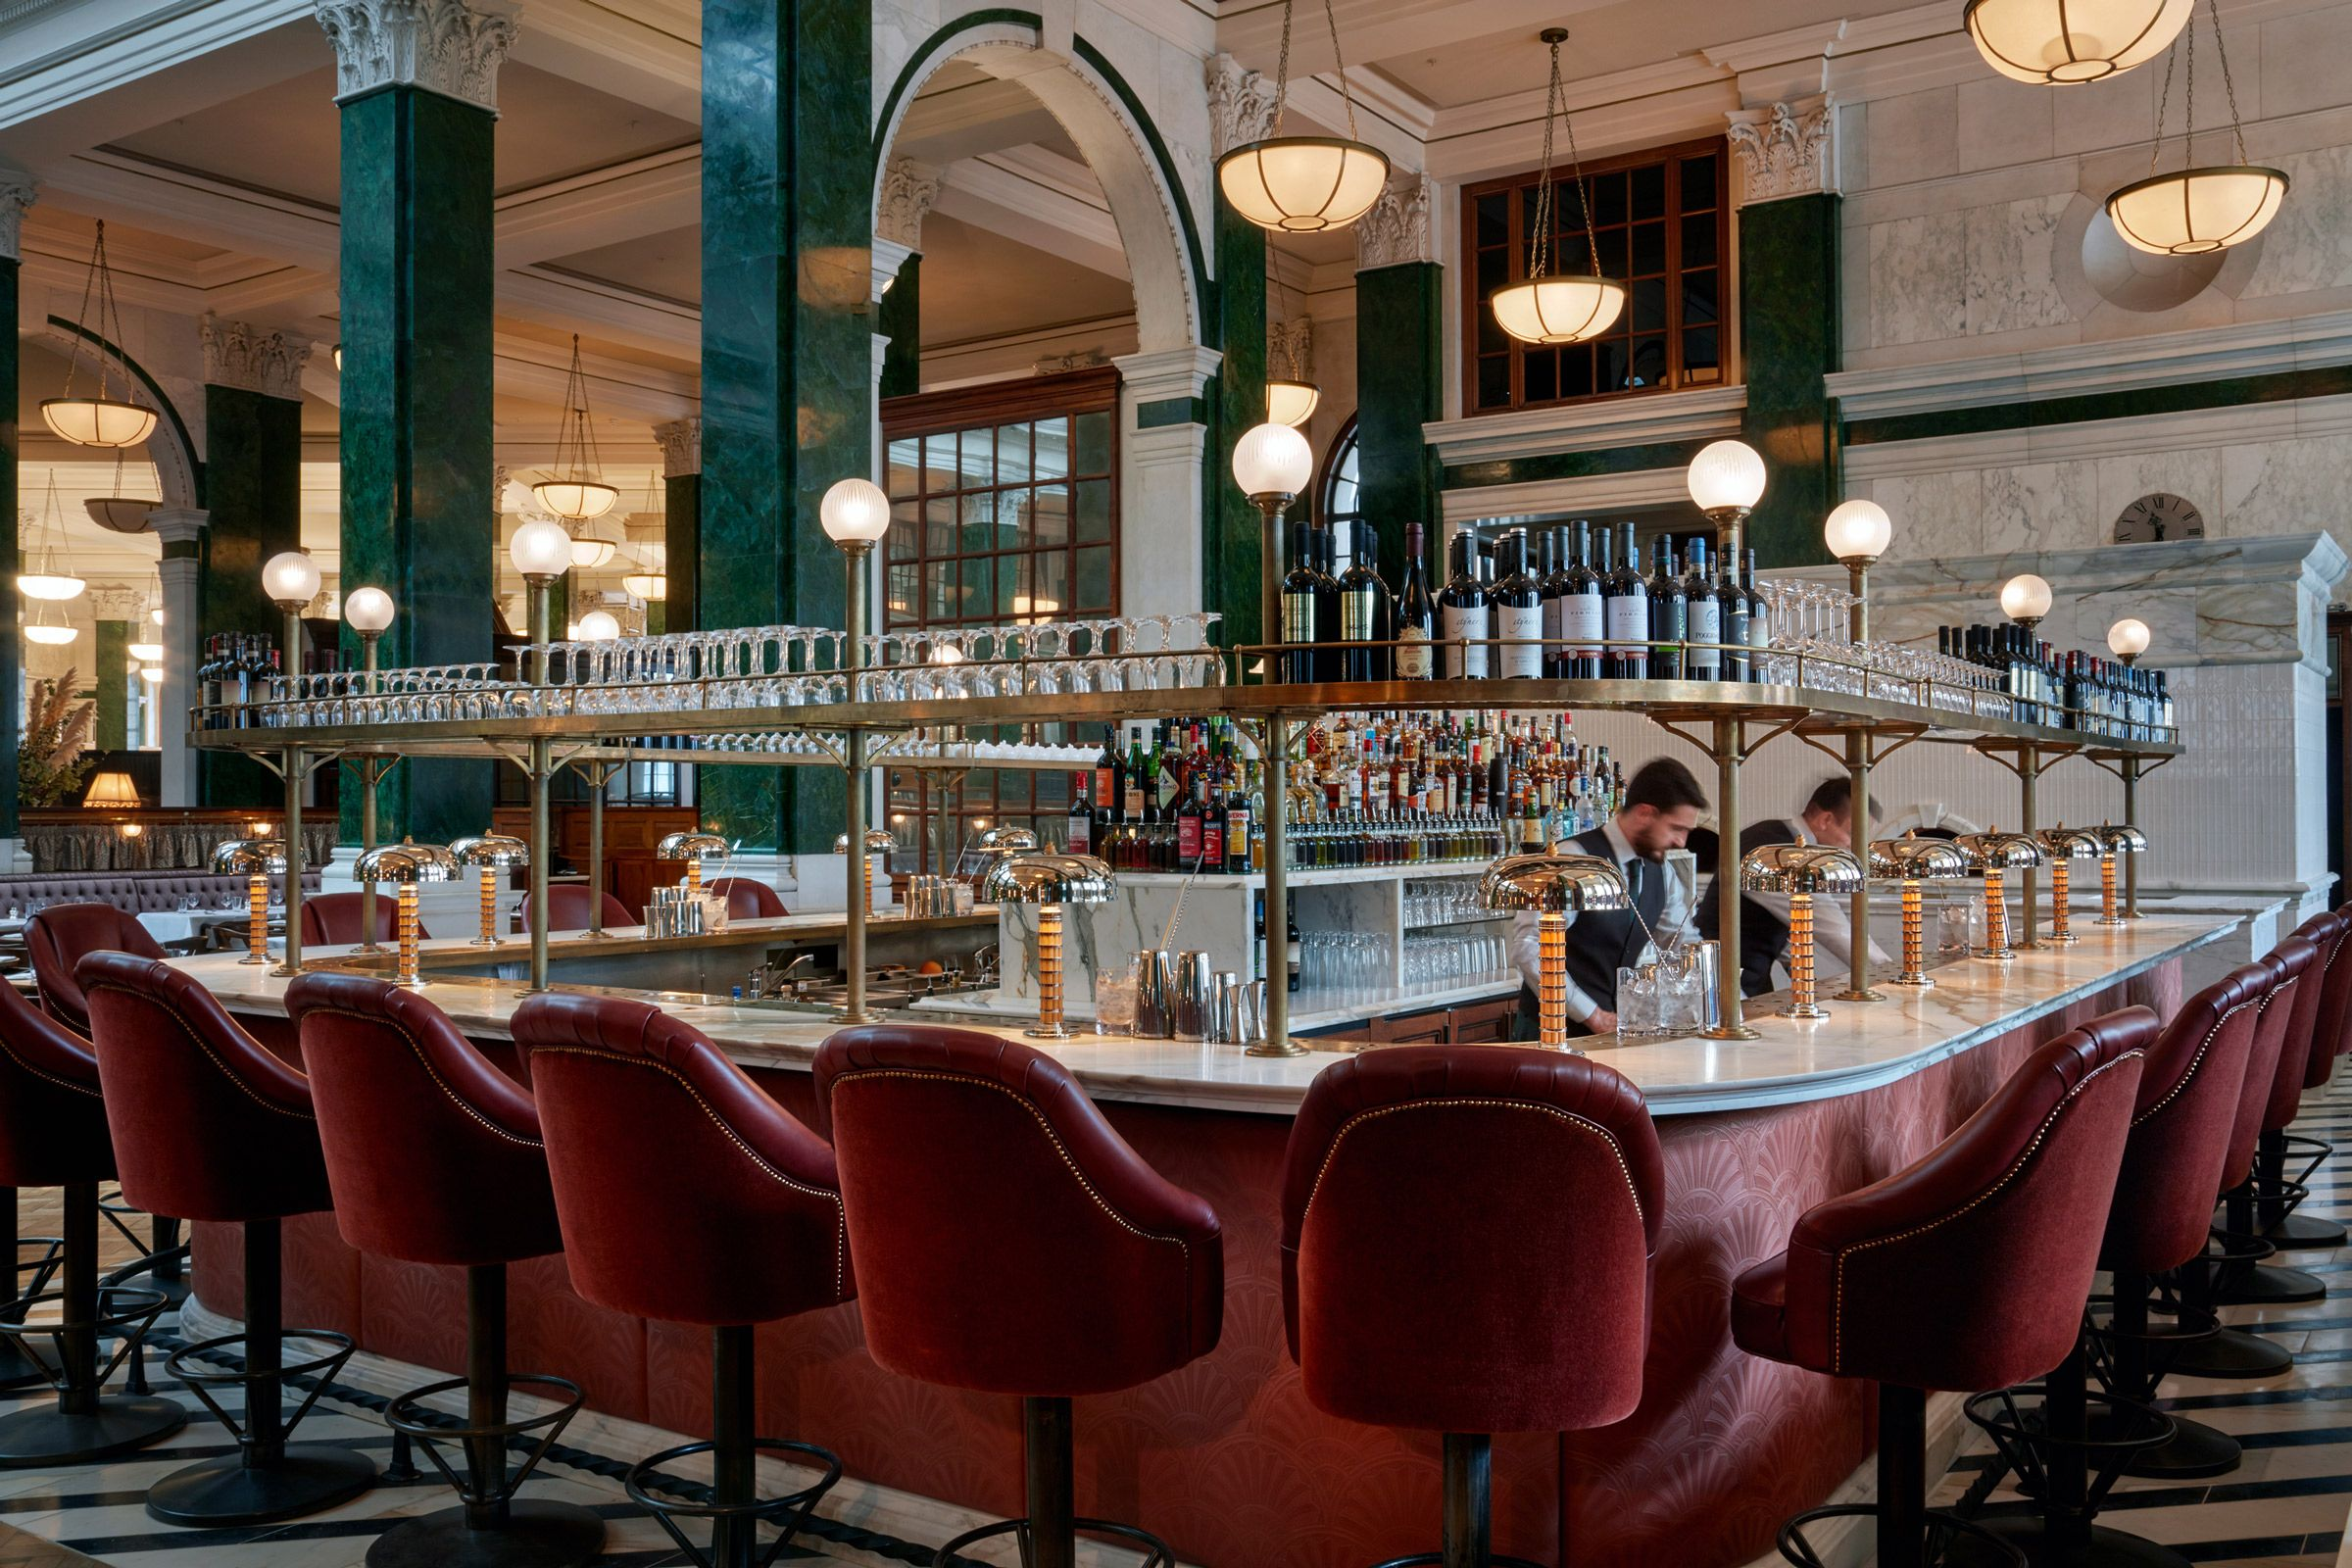 All day brasserie in the City of London serving